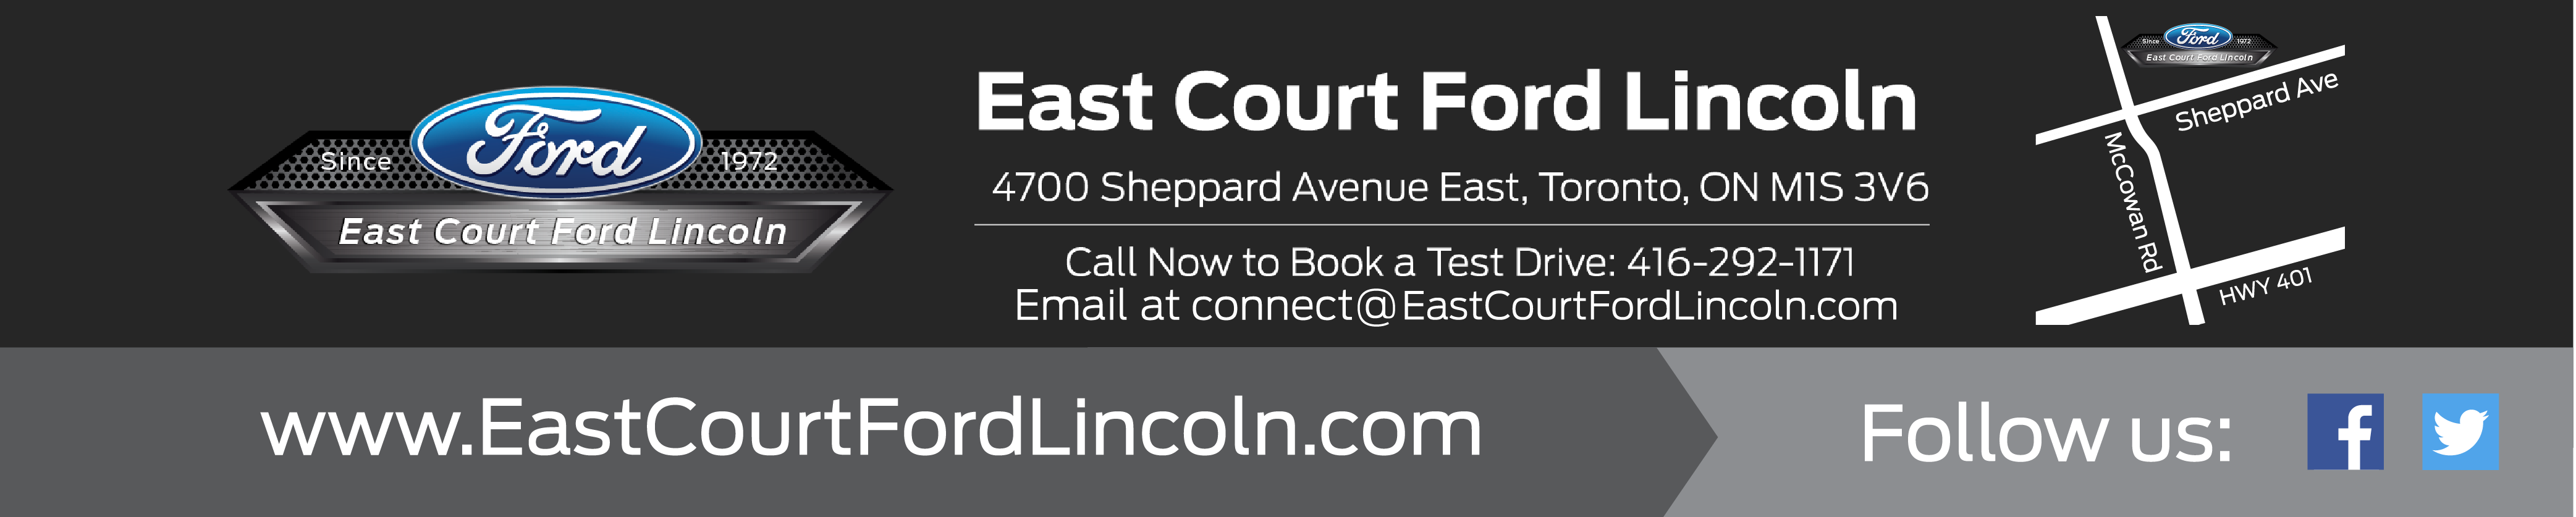 East Court Ford Lincoln Footer